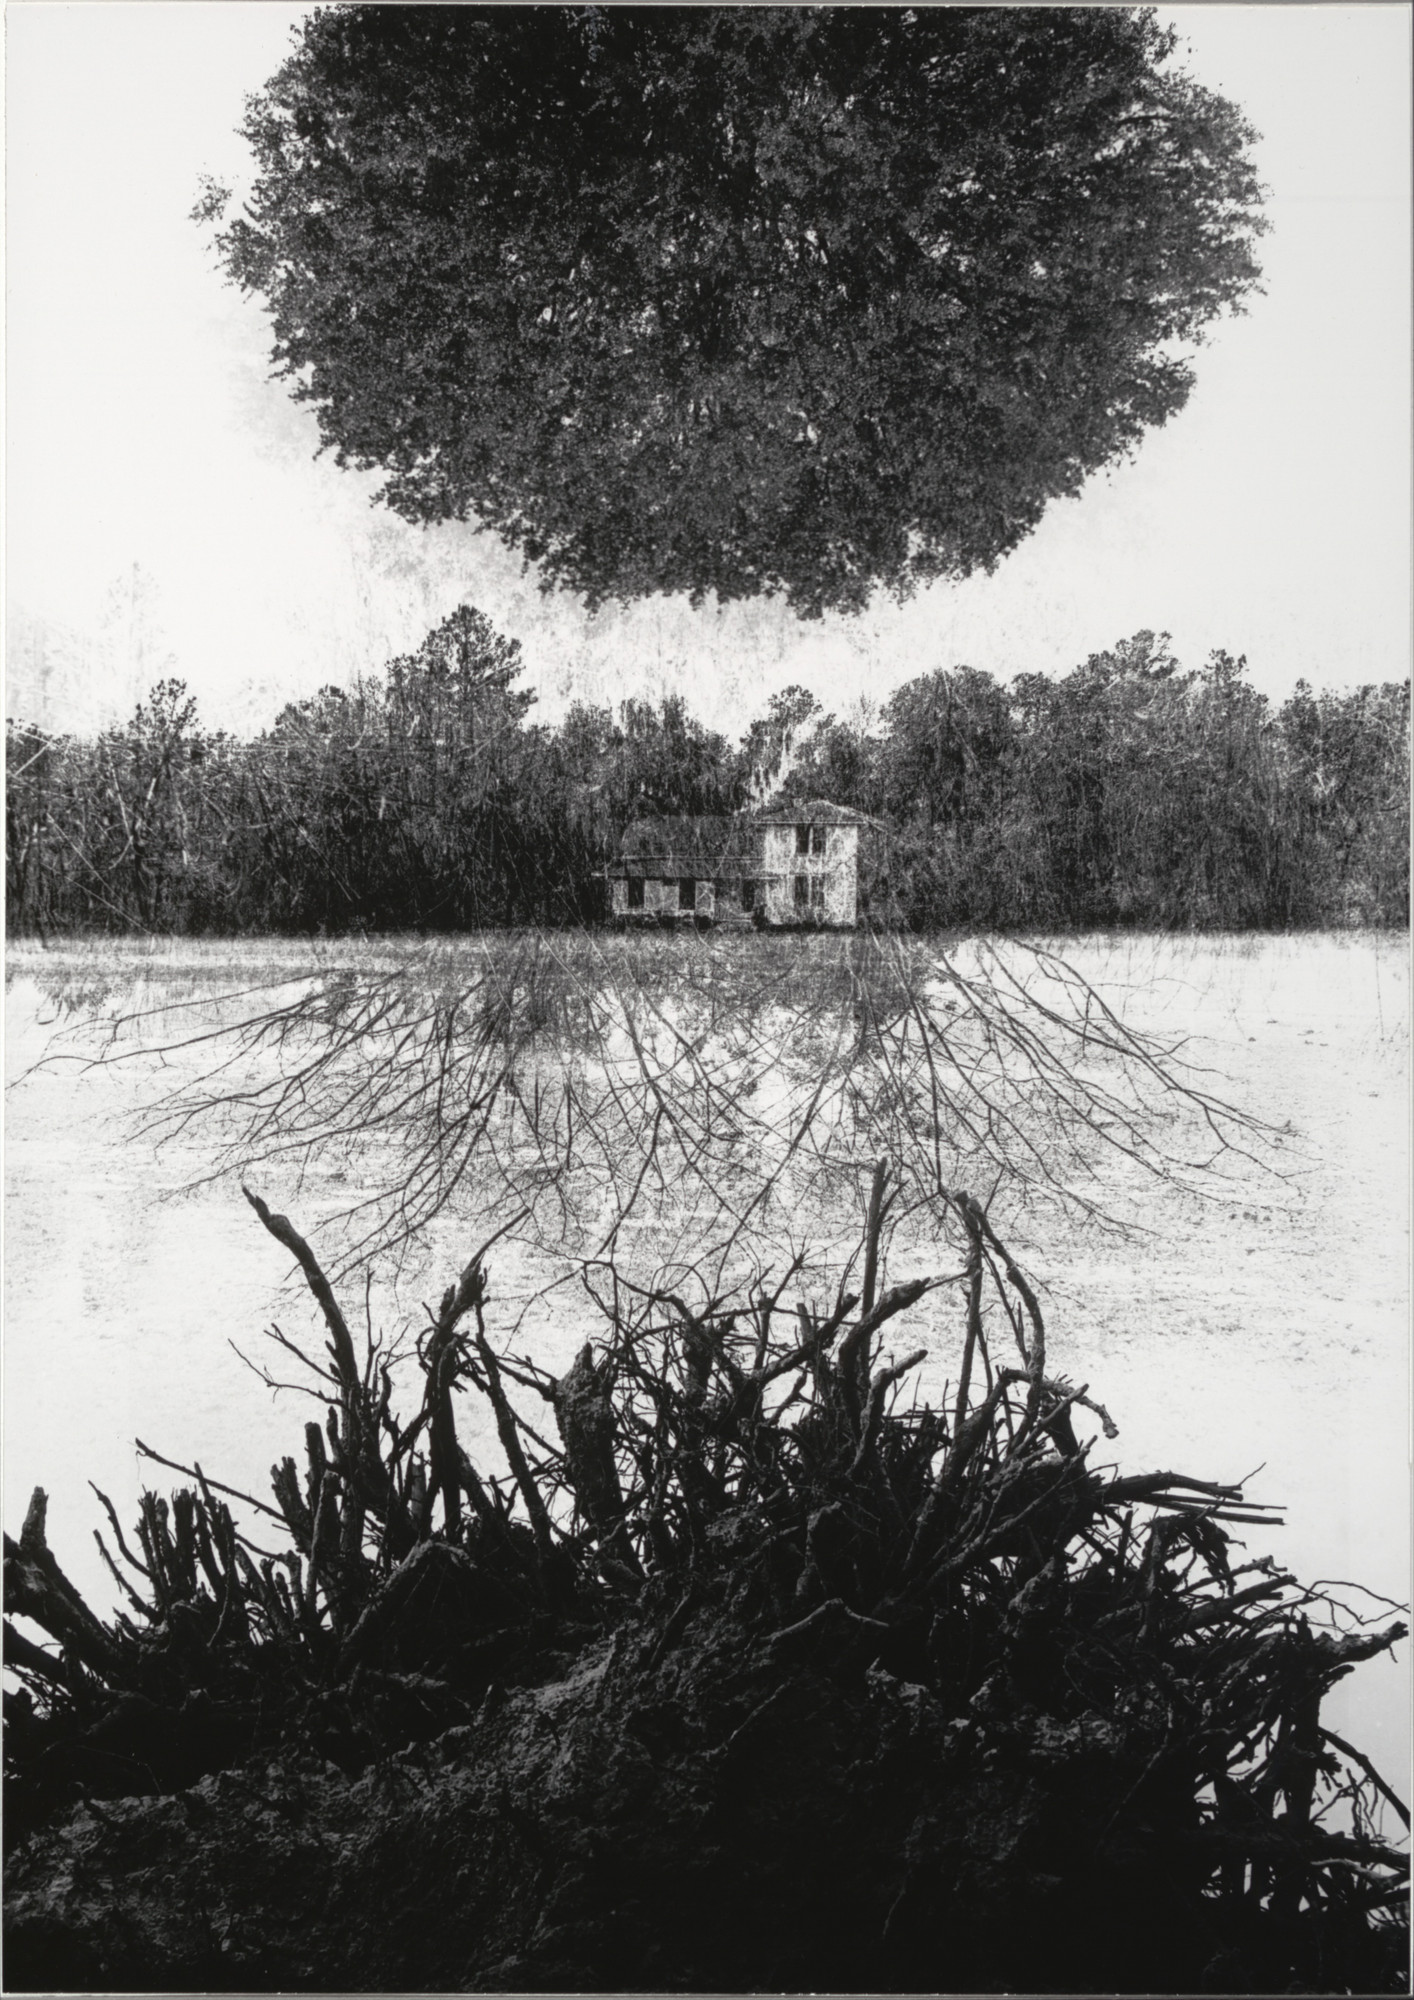 Jerry Uelsmann. Poet's House (First Version). 1965